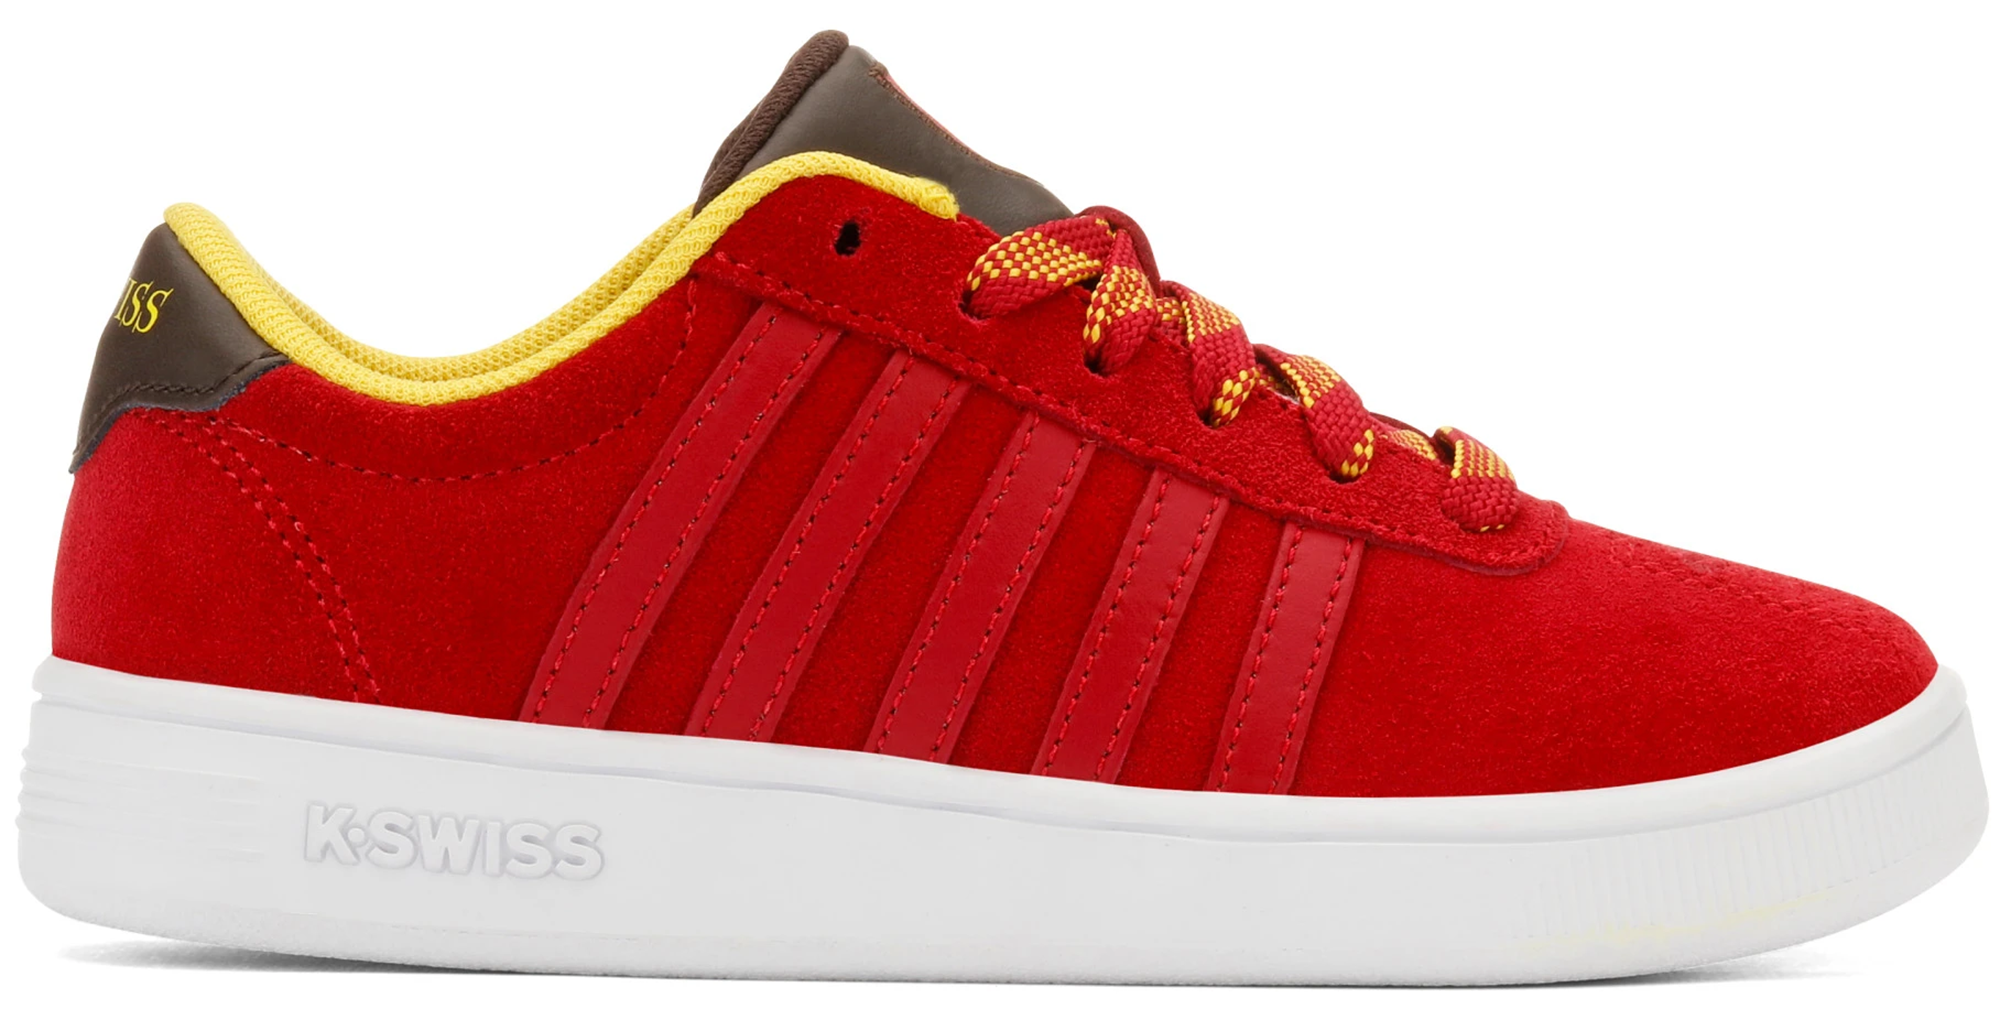 K-Swiss Classic Pro Harry Potter Gryffindor (PS) - 56770-618-M